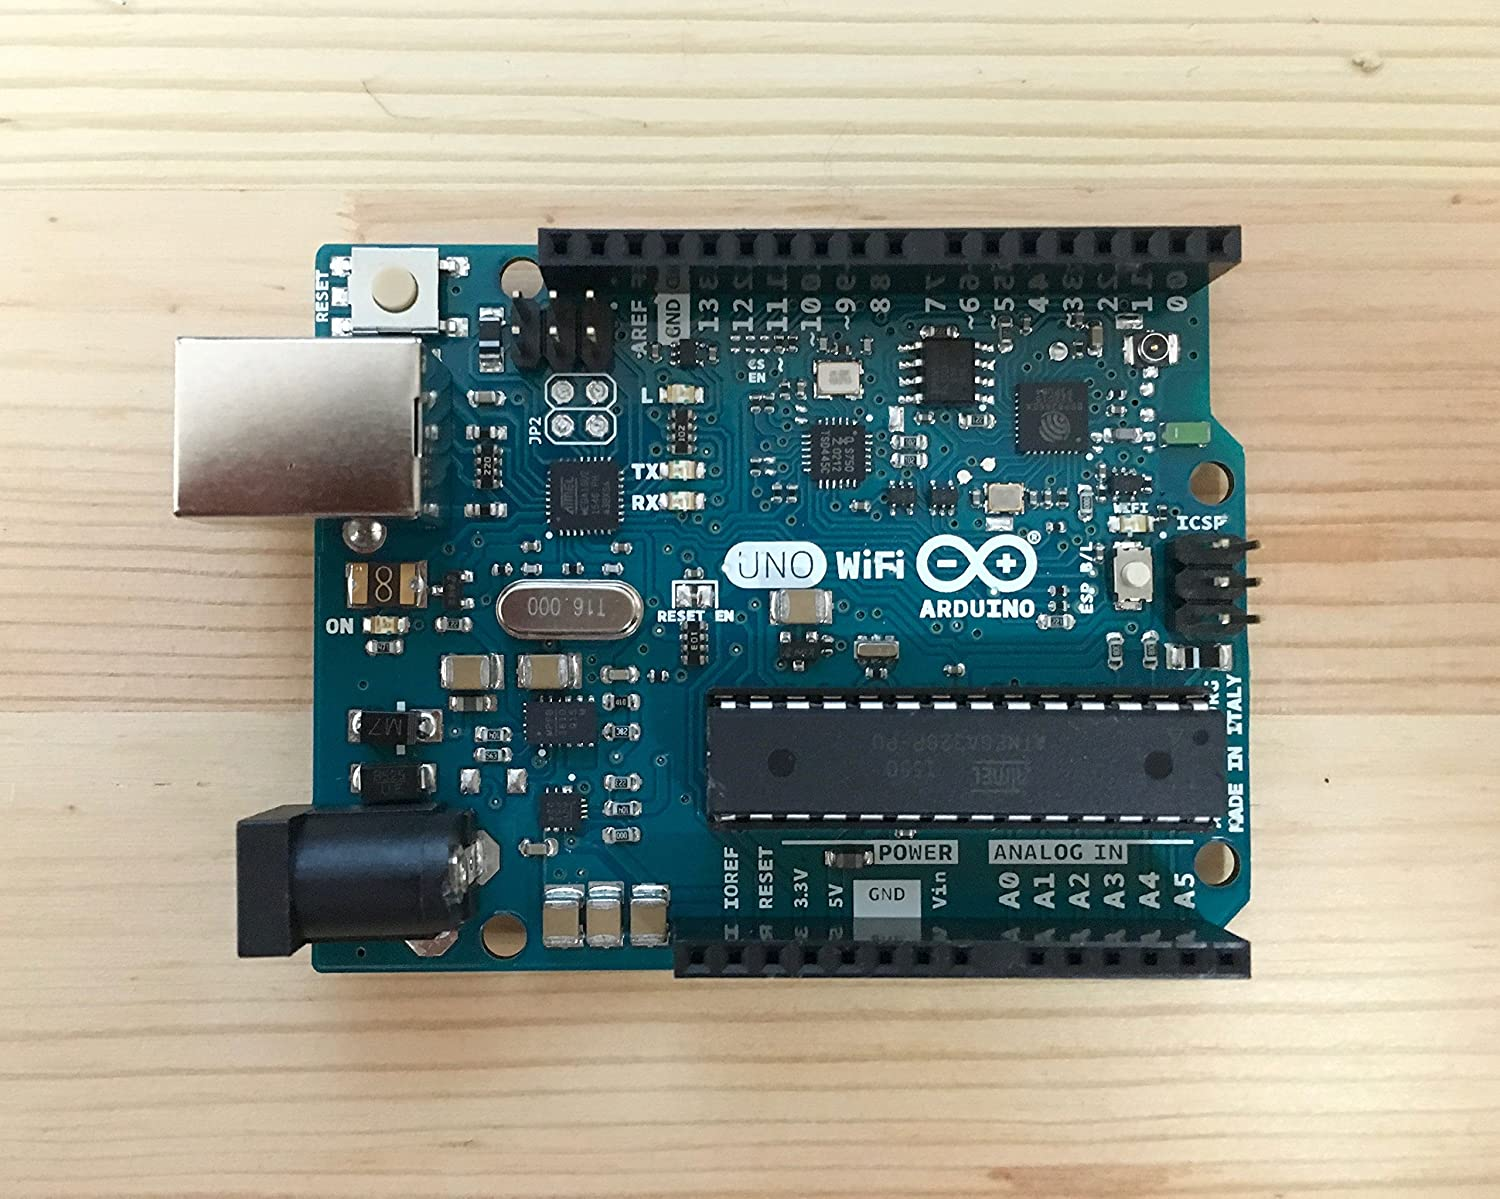 Arduino Uno Wifi Computers Accessories Projects Esp8266 Wireless Web Server Electronics For You